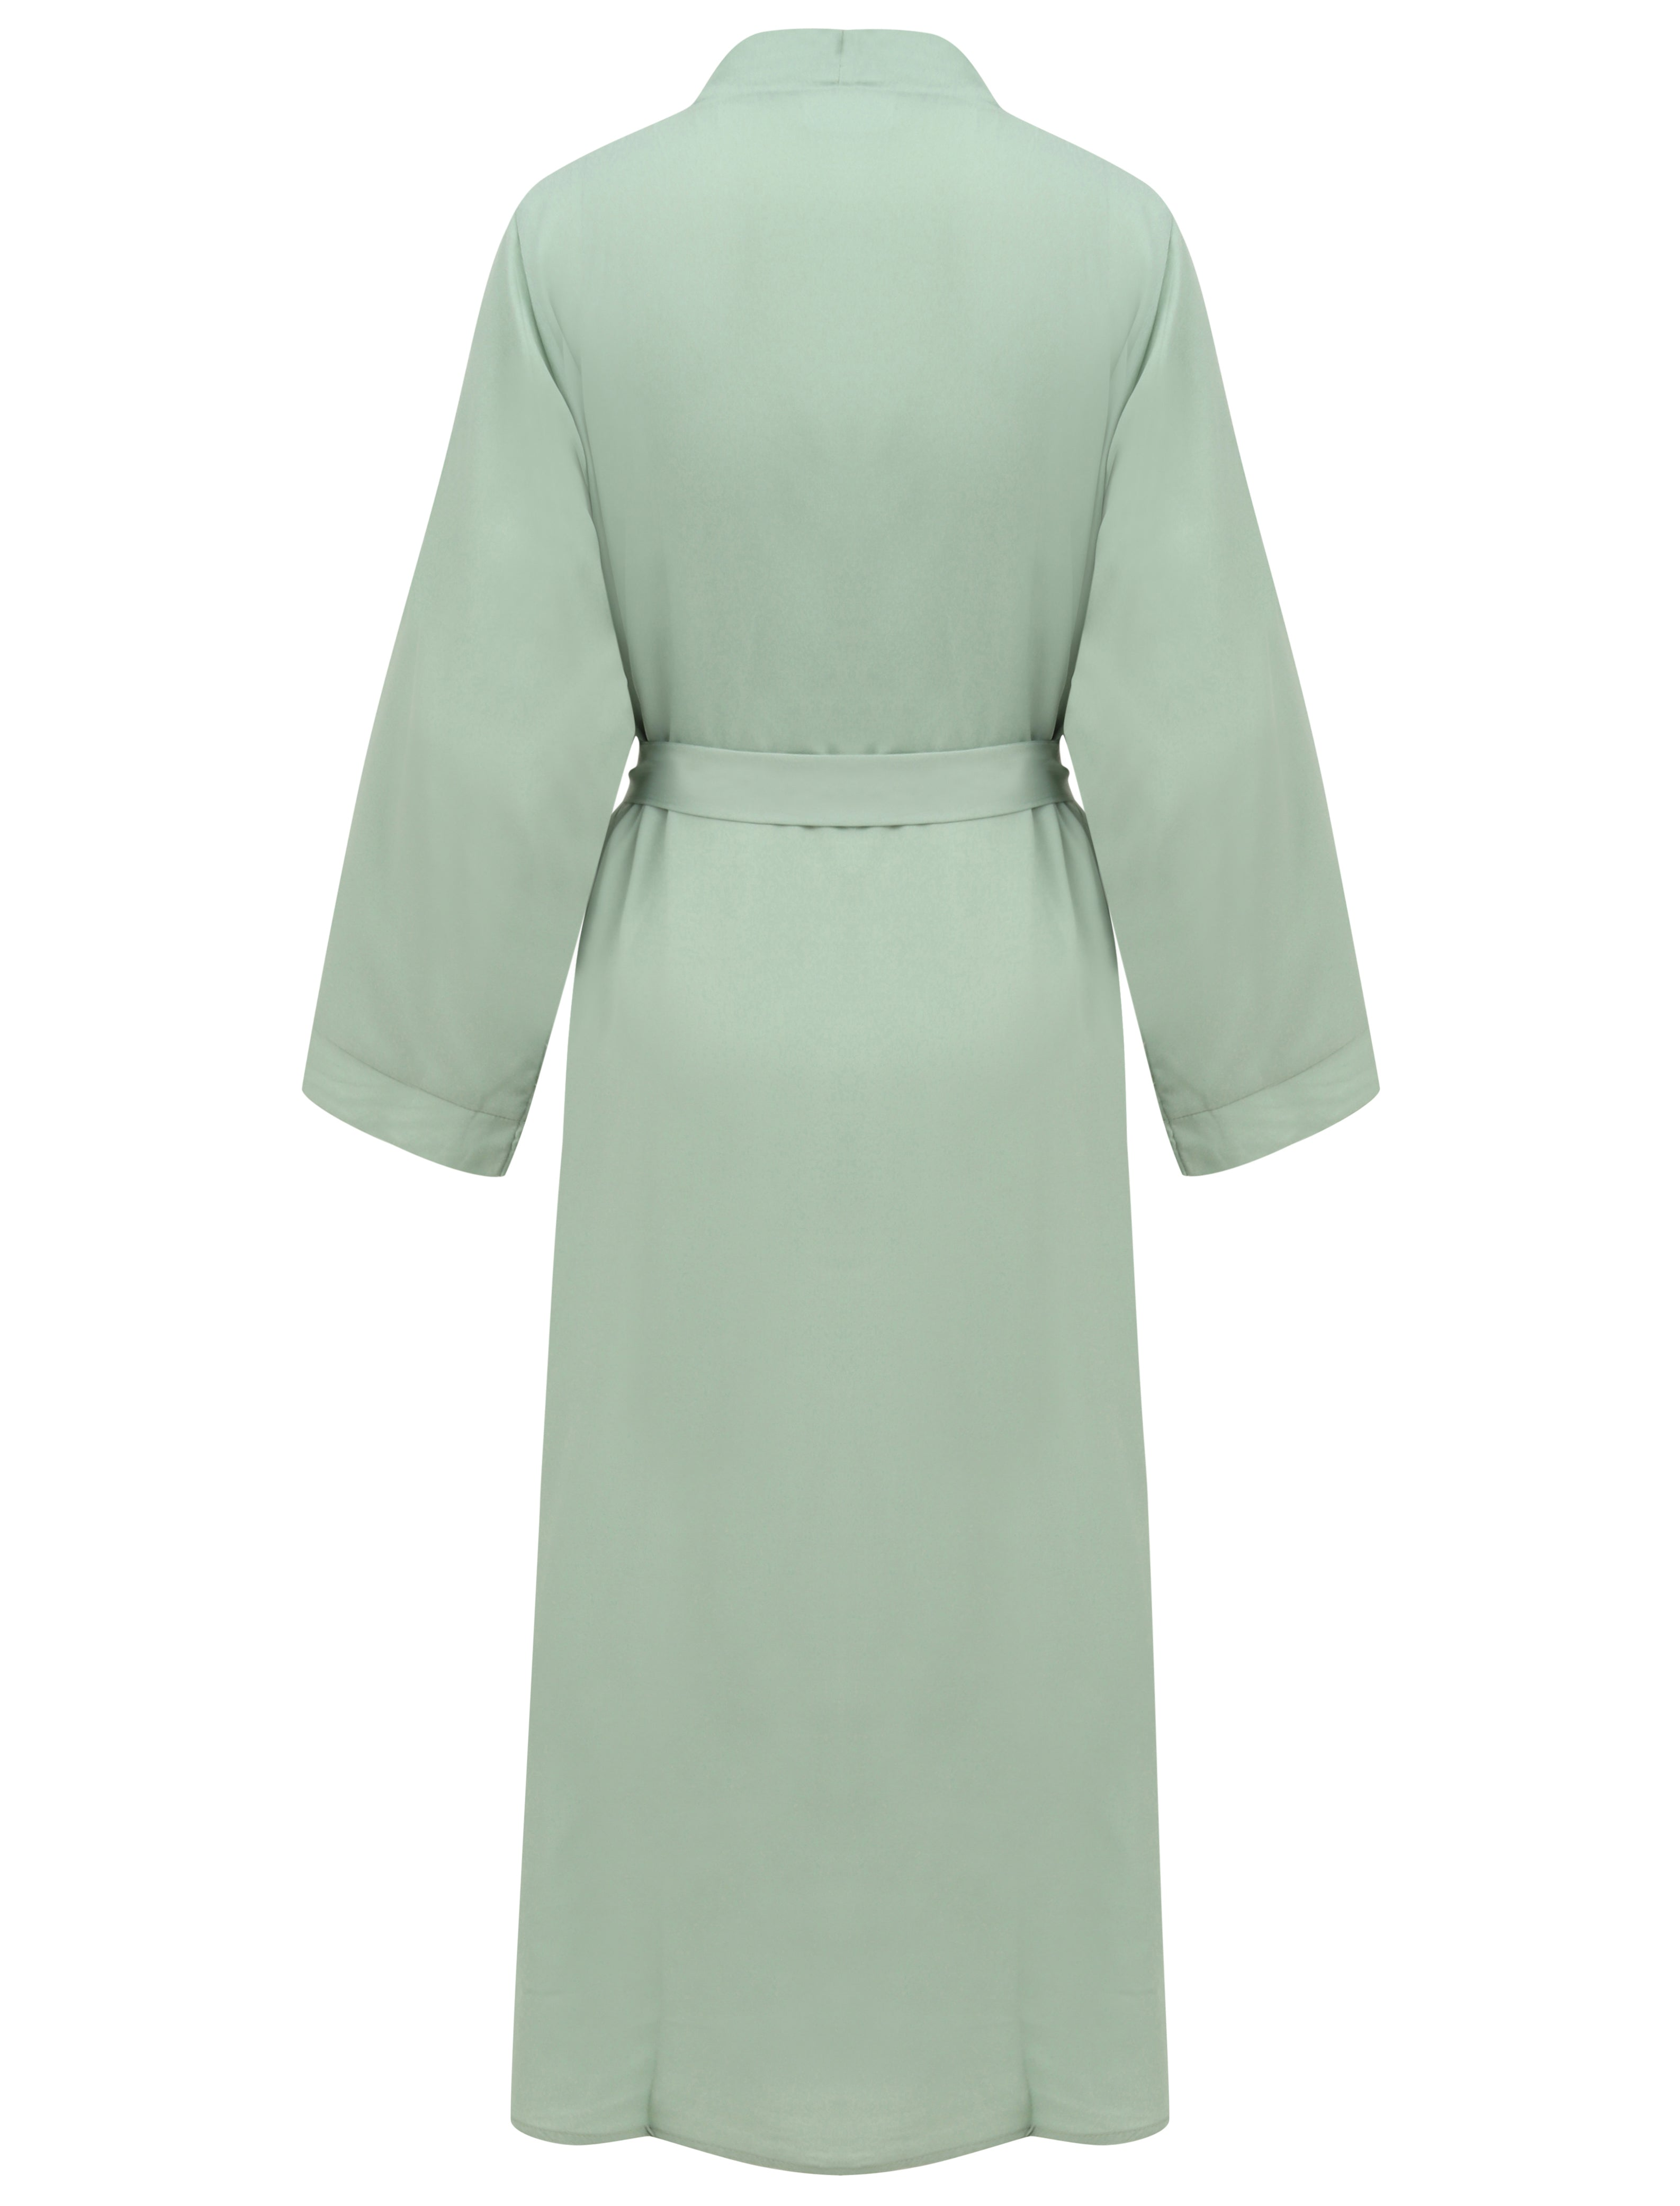 Pale Mint Open Abaya